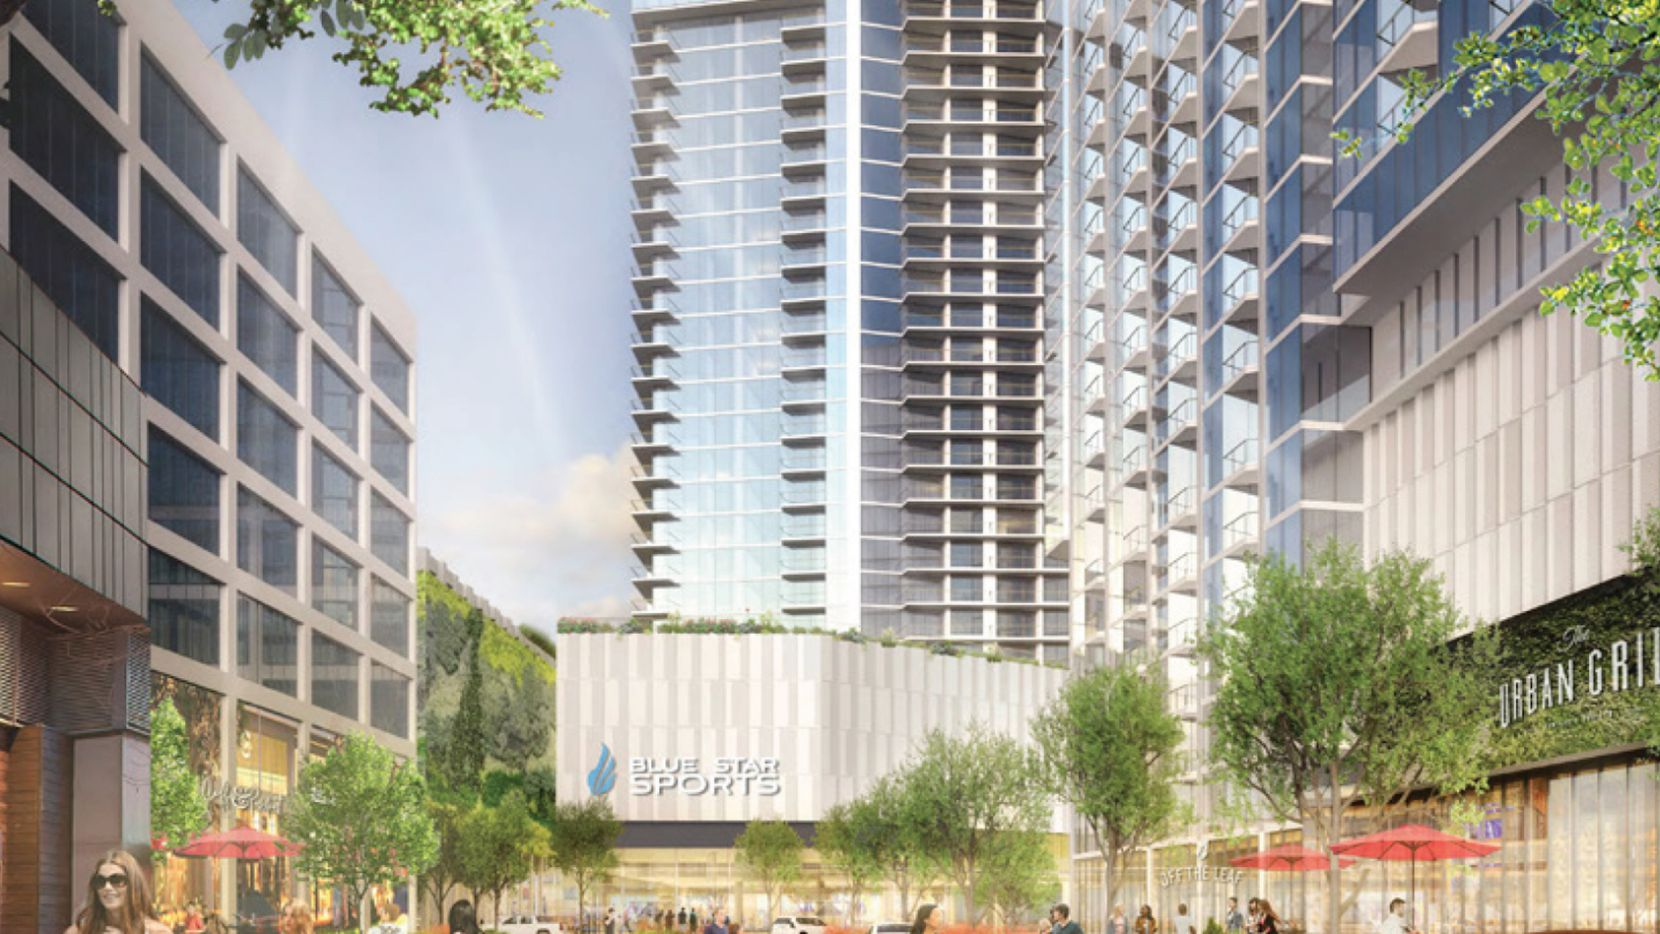 The first phase of The Crossing development near SMU includes a residential tower with more than 20 floors